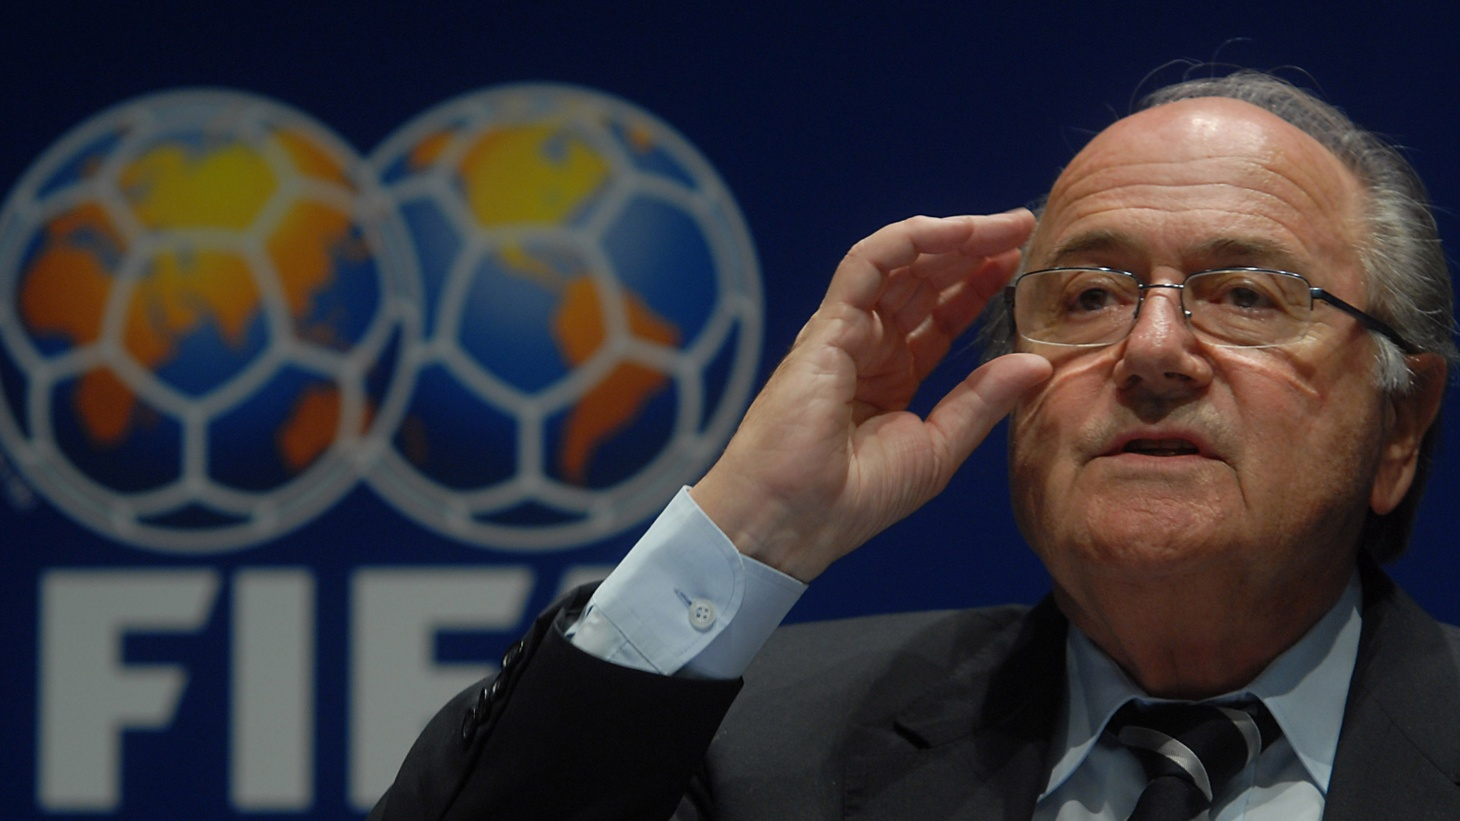 FIFA president Sepp Blatter is resigning amid a corruption scandal. After the TSA's failed security tests, its director steps down. Also, comedian Eddie Izzard discusses his latest show, Force Majeure.